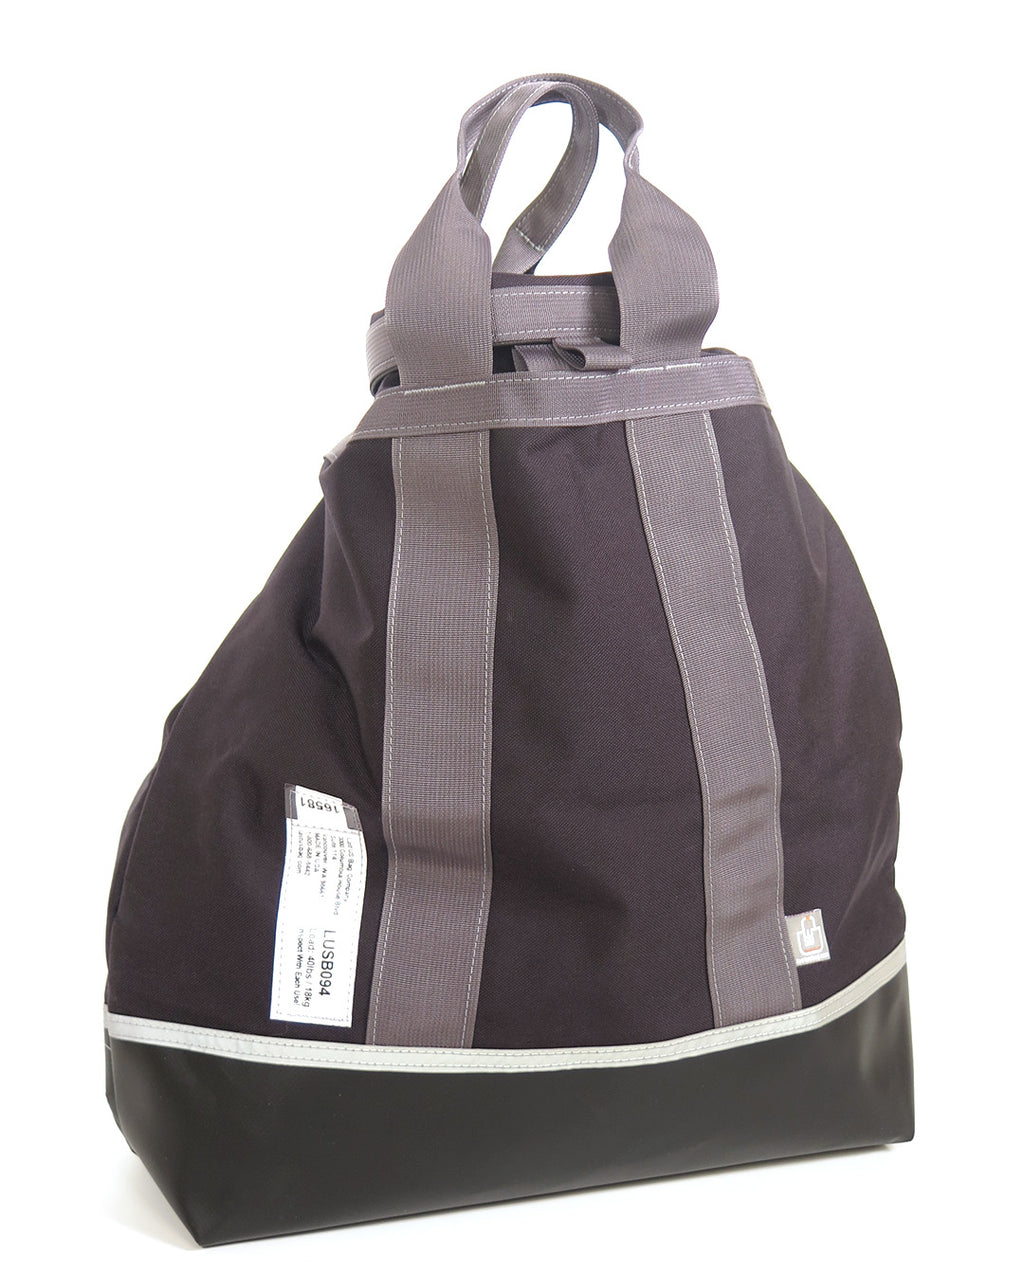 LUSB094 All Grey FORT Personal Utility Lift Bag